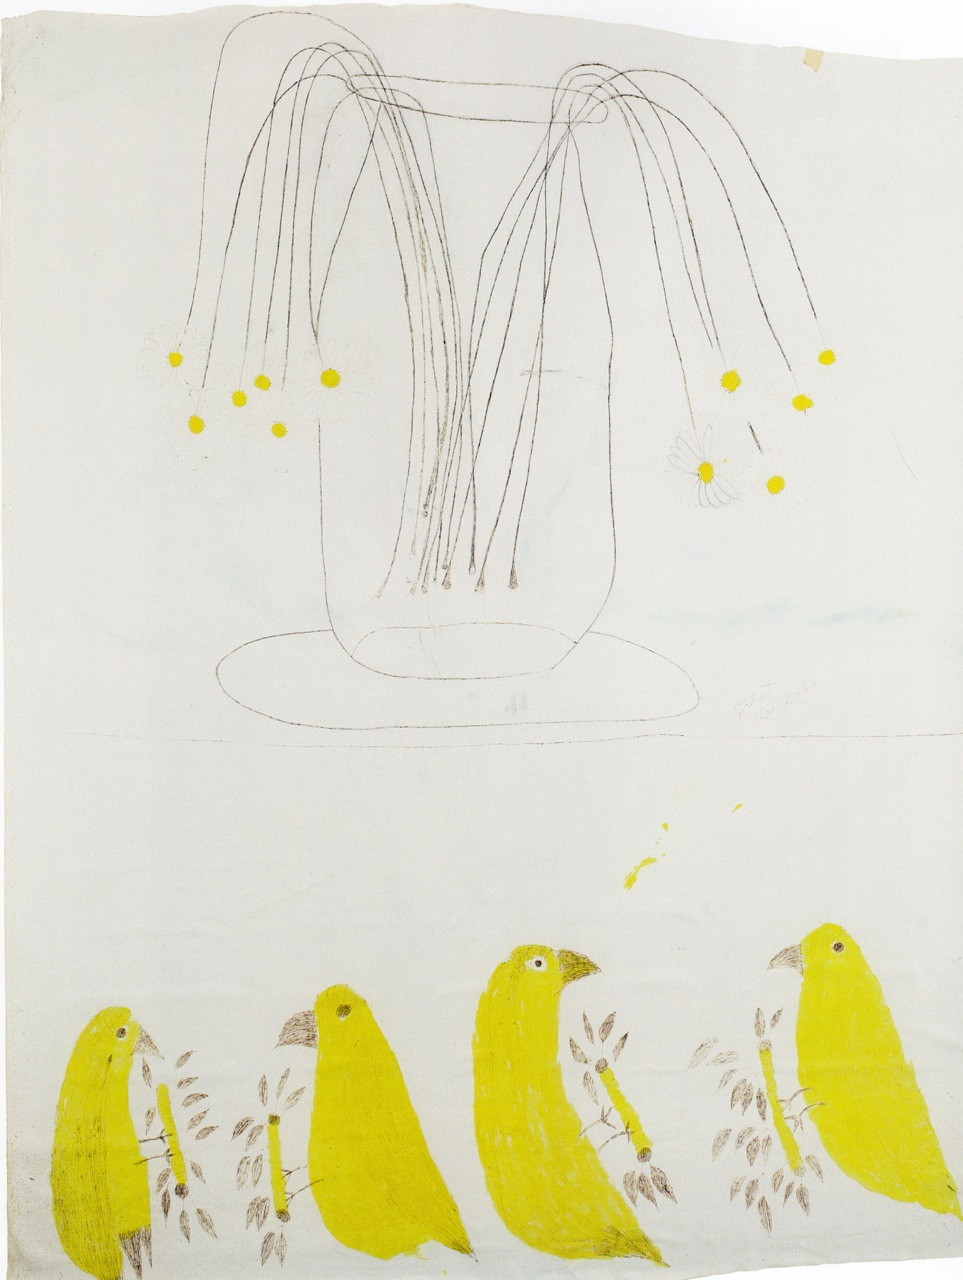 Lee Godie, Yellow Birds and Daisies. Opaque watercolor and ballpoint pen ink on primsed canvas 74 x 58 1/2 inches